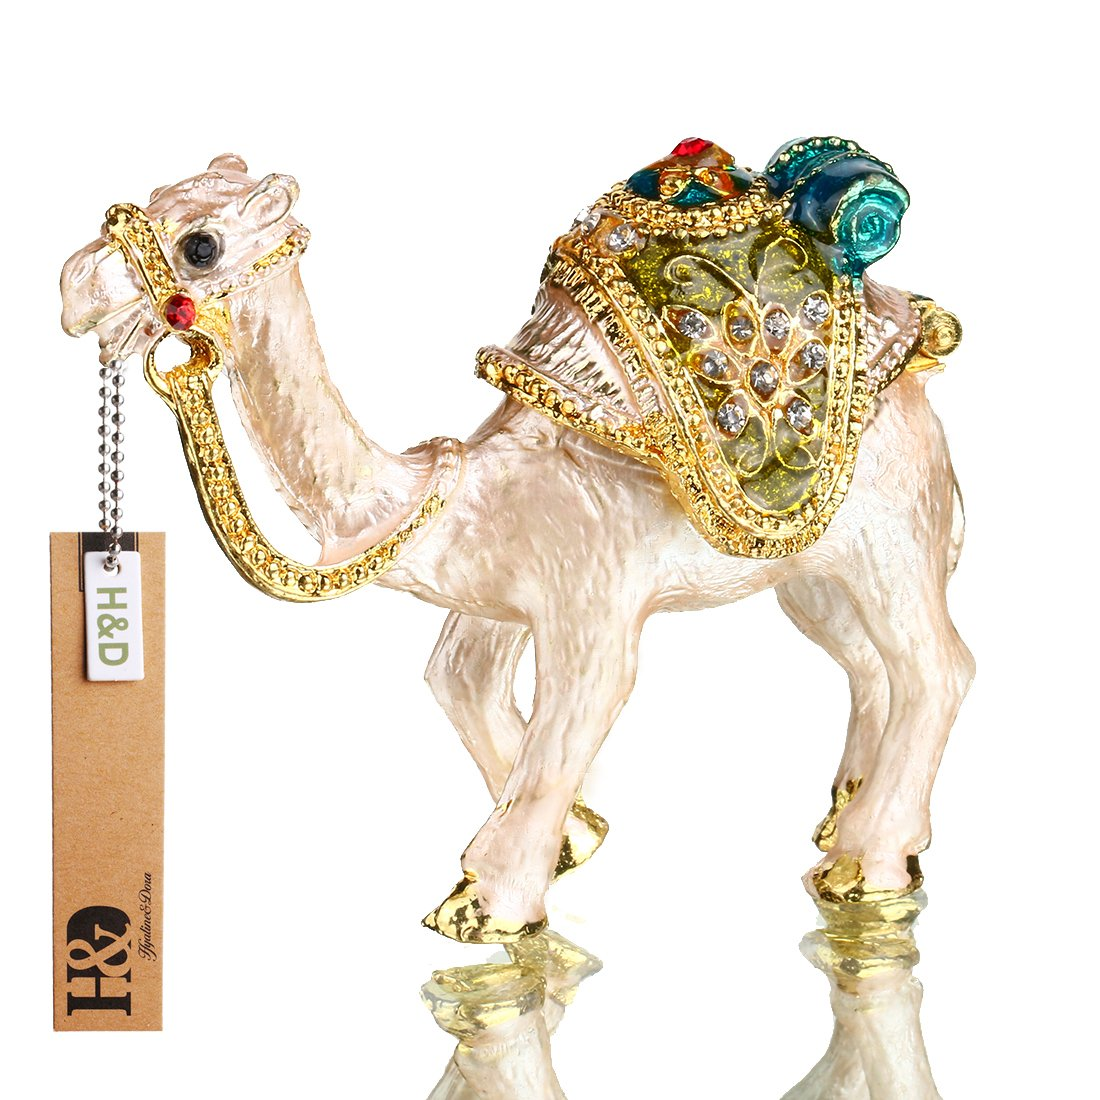 YUFENG Mini Figurine Trinket Boxes Ornament Crystals ,Hand-painted Patterns Jewelry Trinket Box Hinged Collectible Ring Display Holders for Women or Girl (camel) YUFENG CRAFTS MANUFACTURE CO. LTD